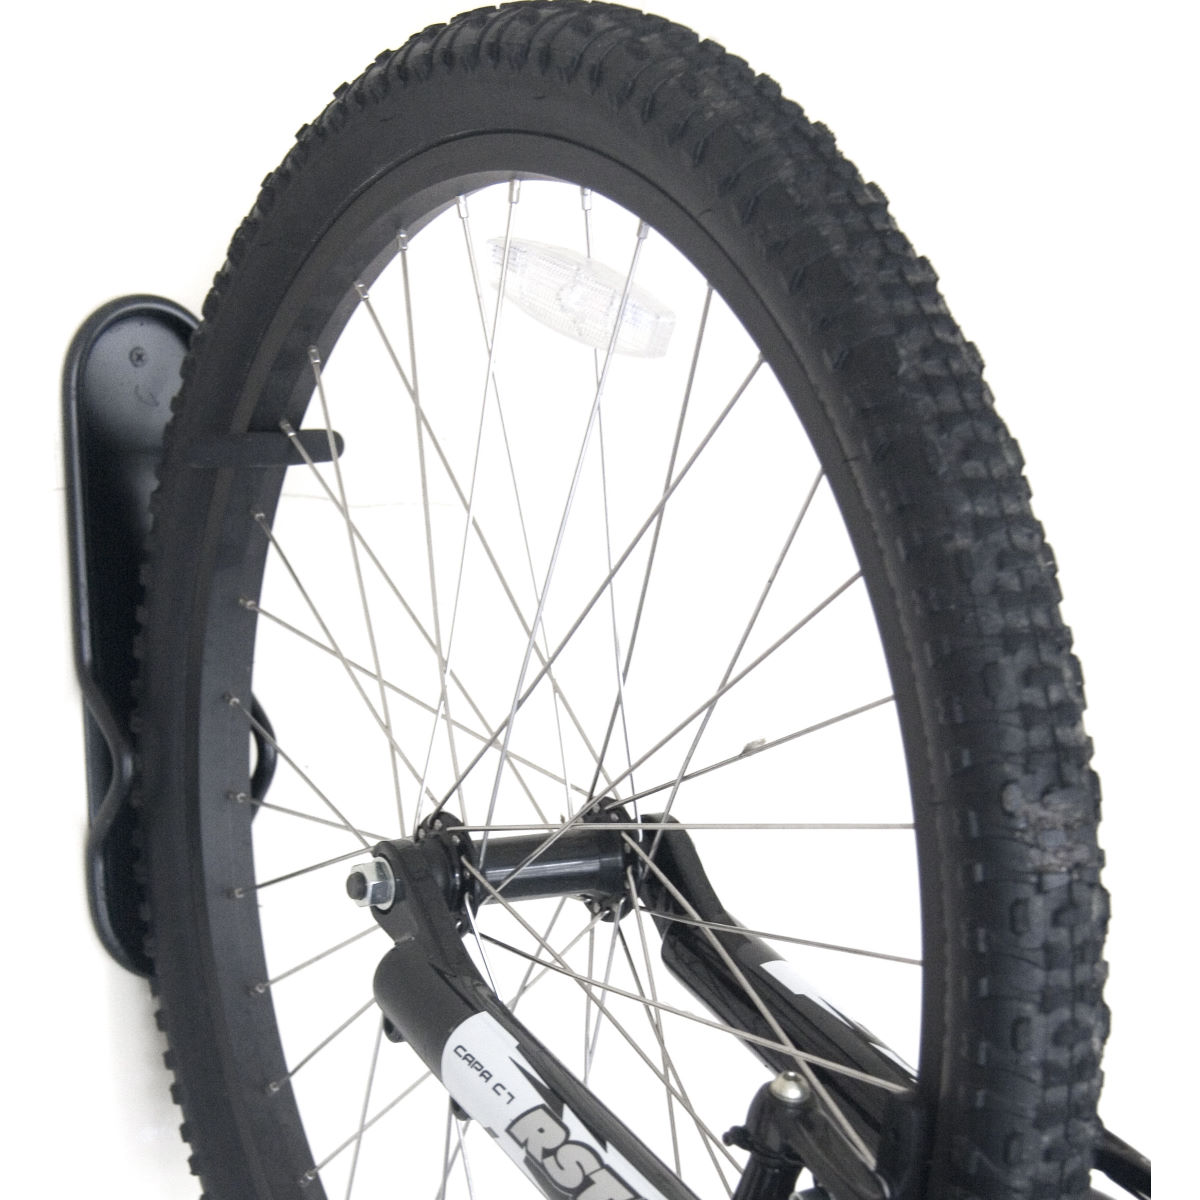 Gear Up Off-the-Wall Single Vertical Rack - Soportes para bicicleta